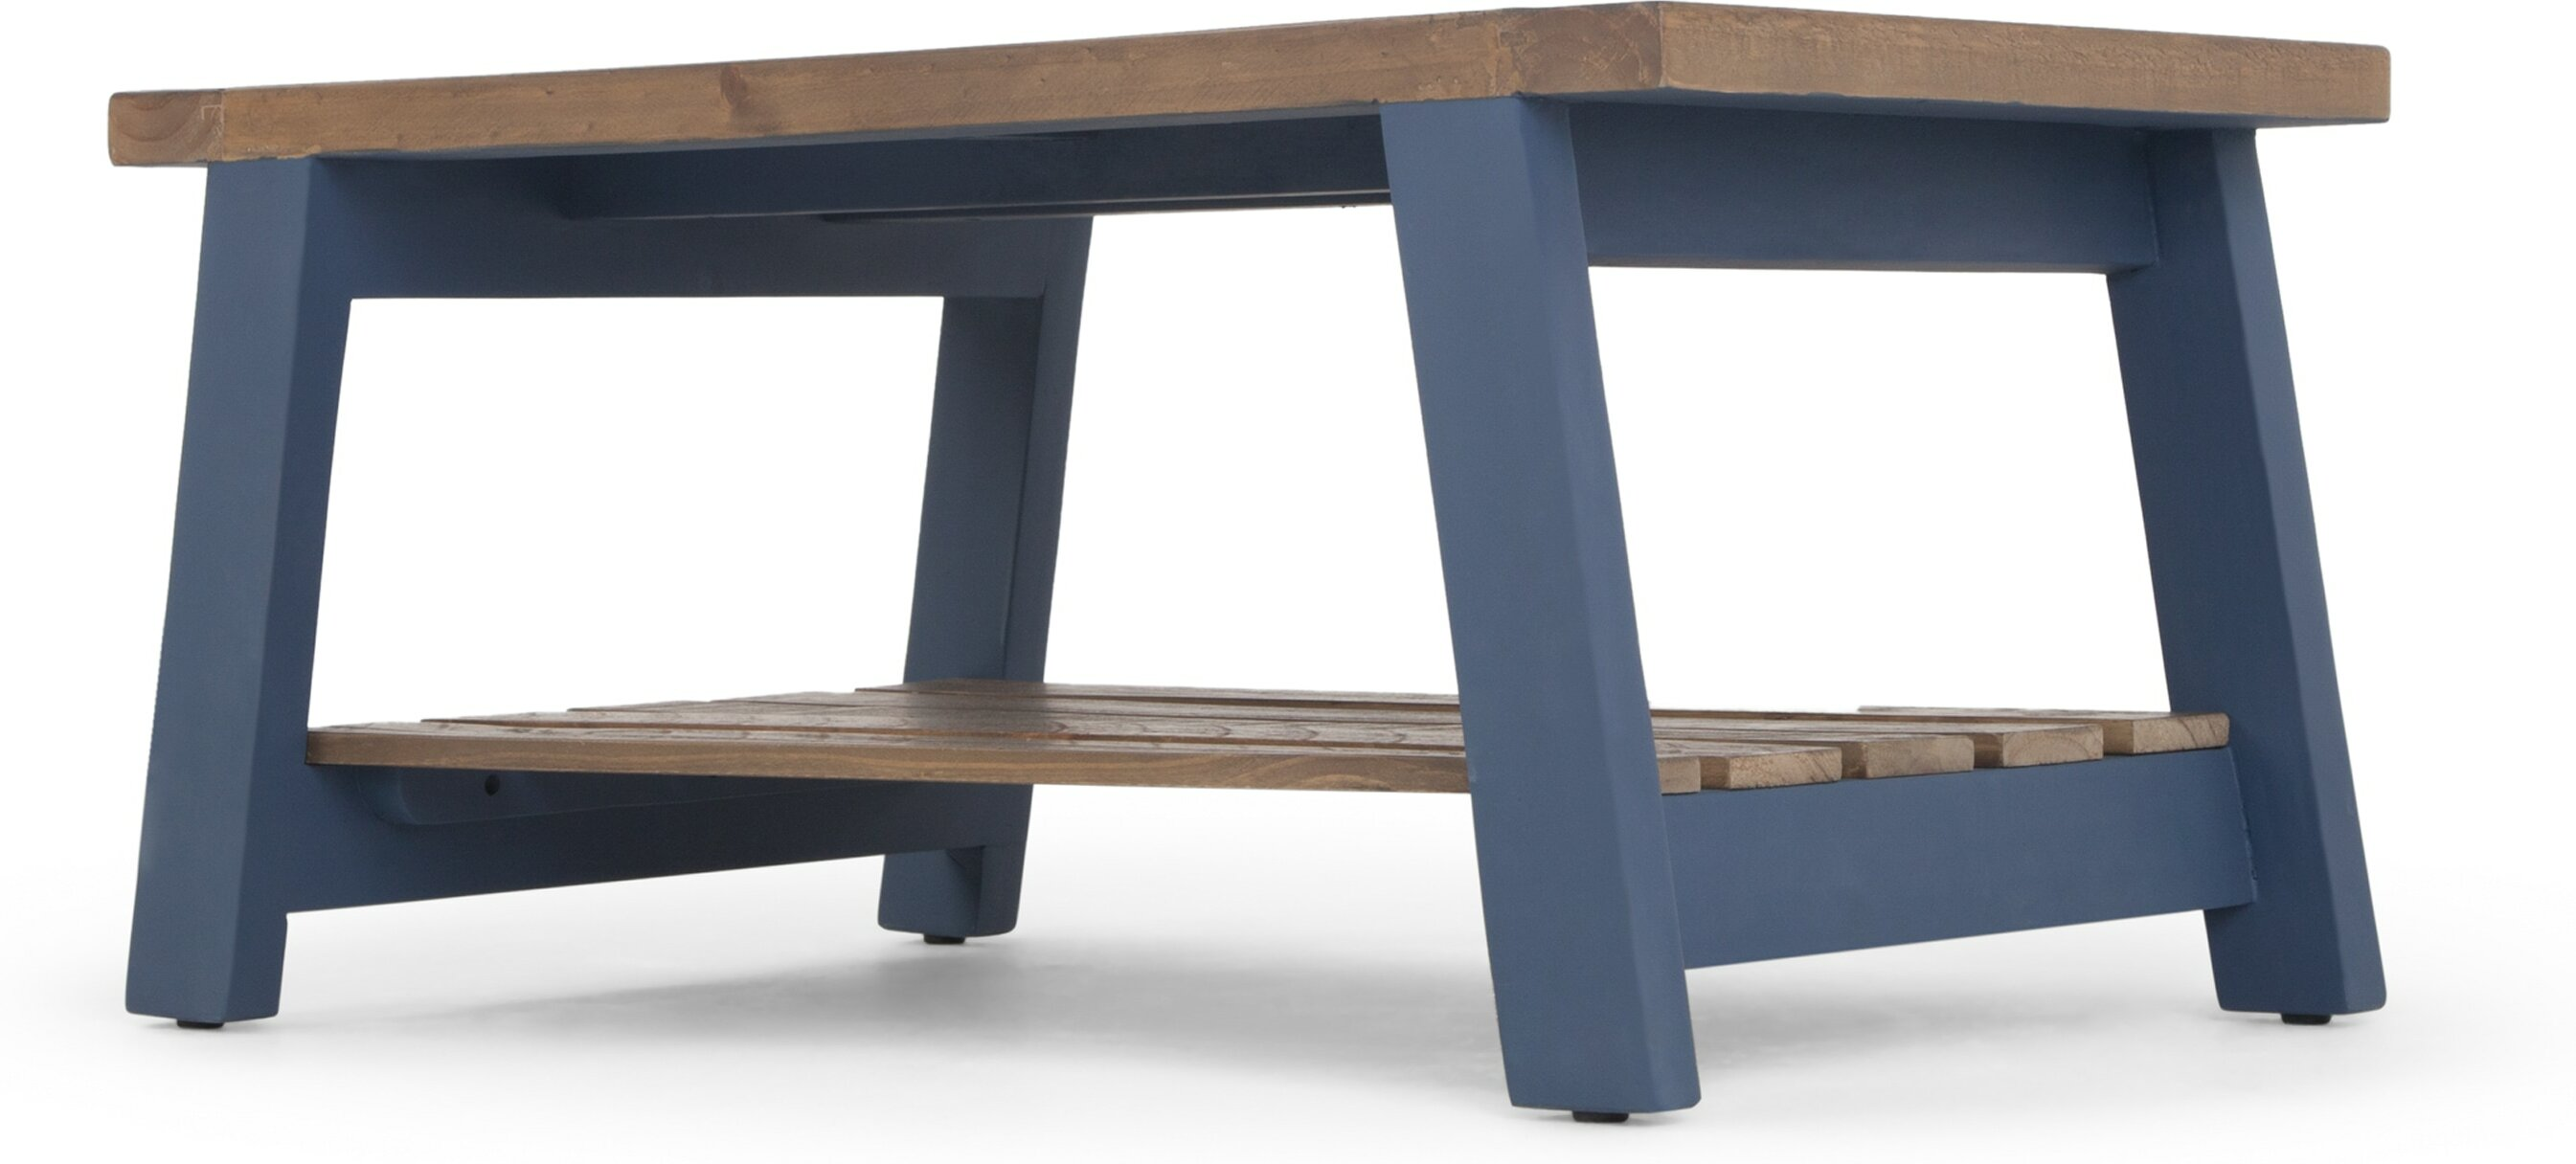 Buy Cheap Solid Wood Coffee Table Compare Tables Prices For Best Uk Deals